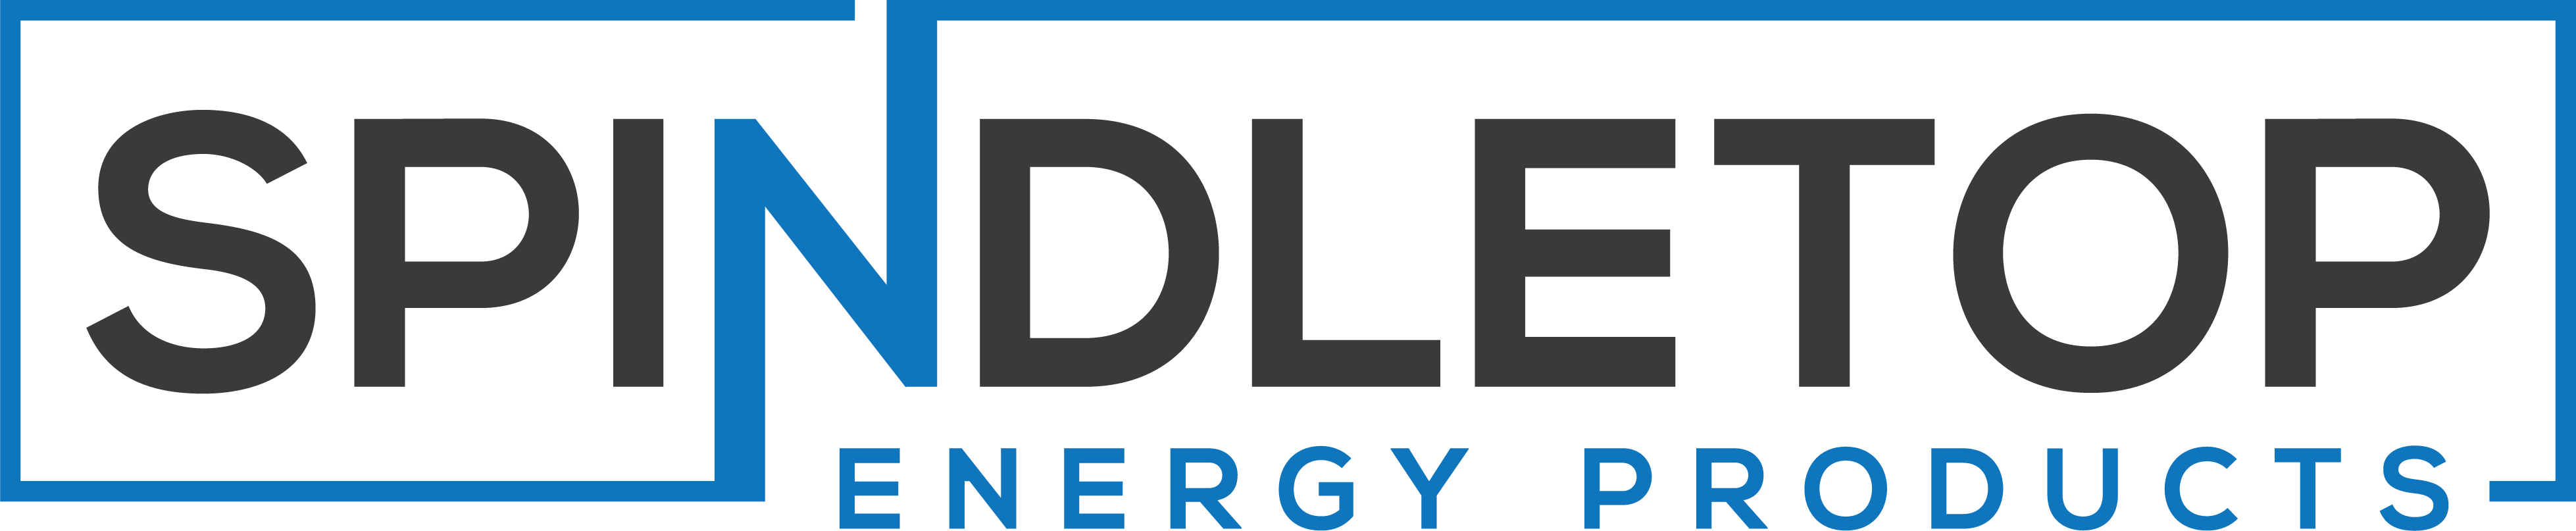 Spindletop Energy Products